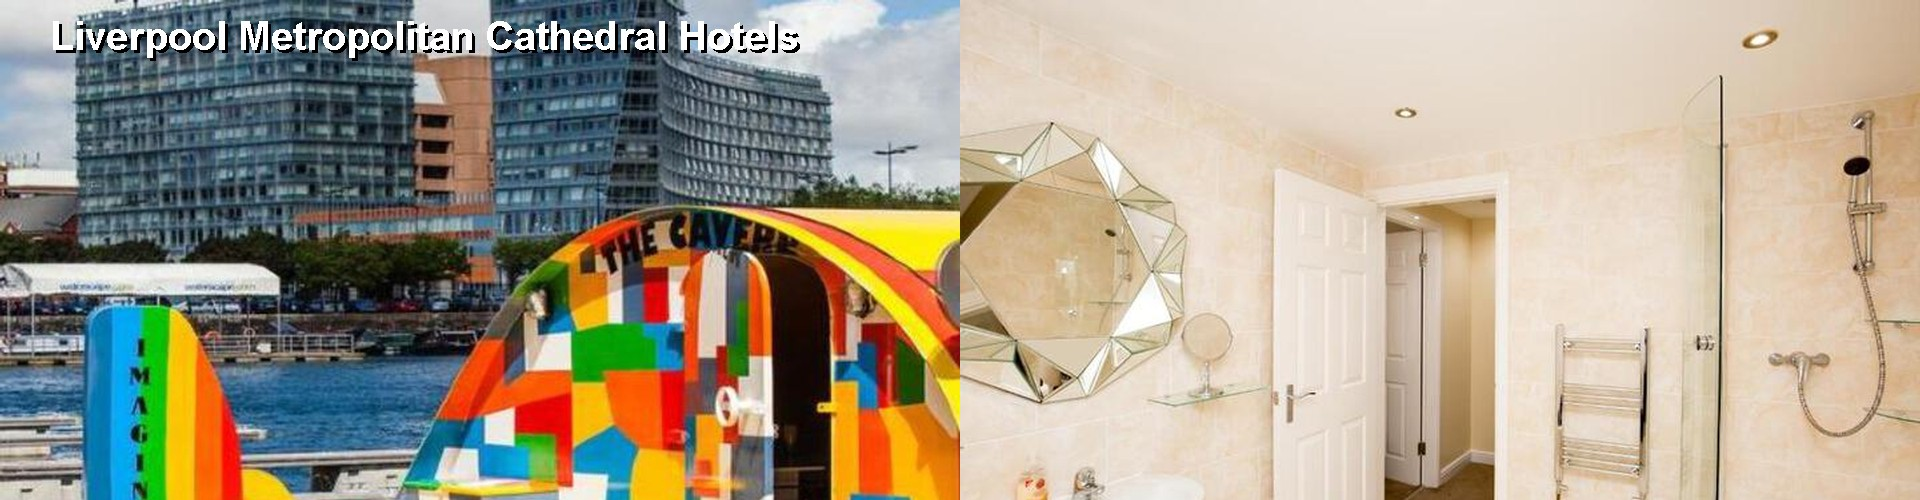 5 Best Hotels near Liverpool Metropolitan Cathedral